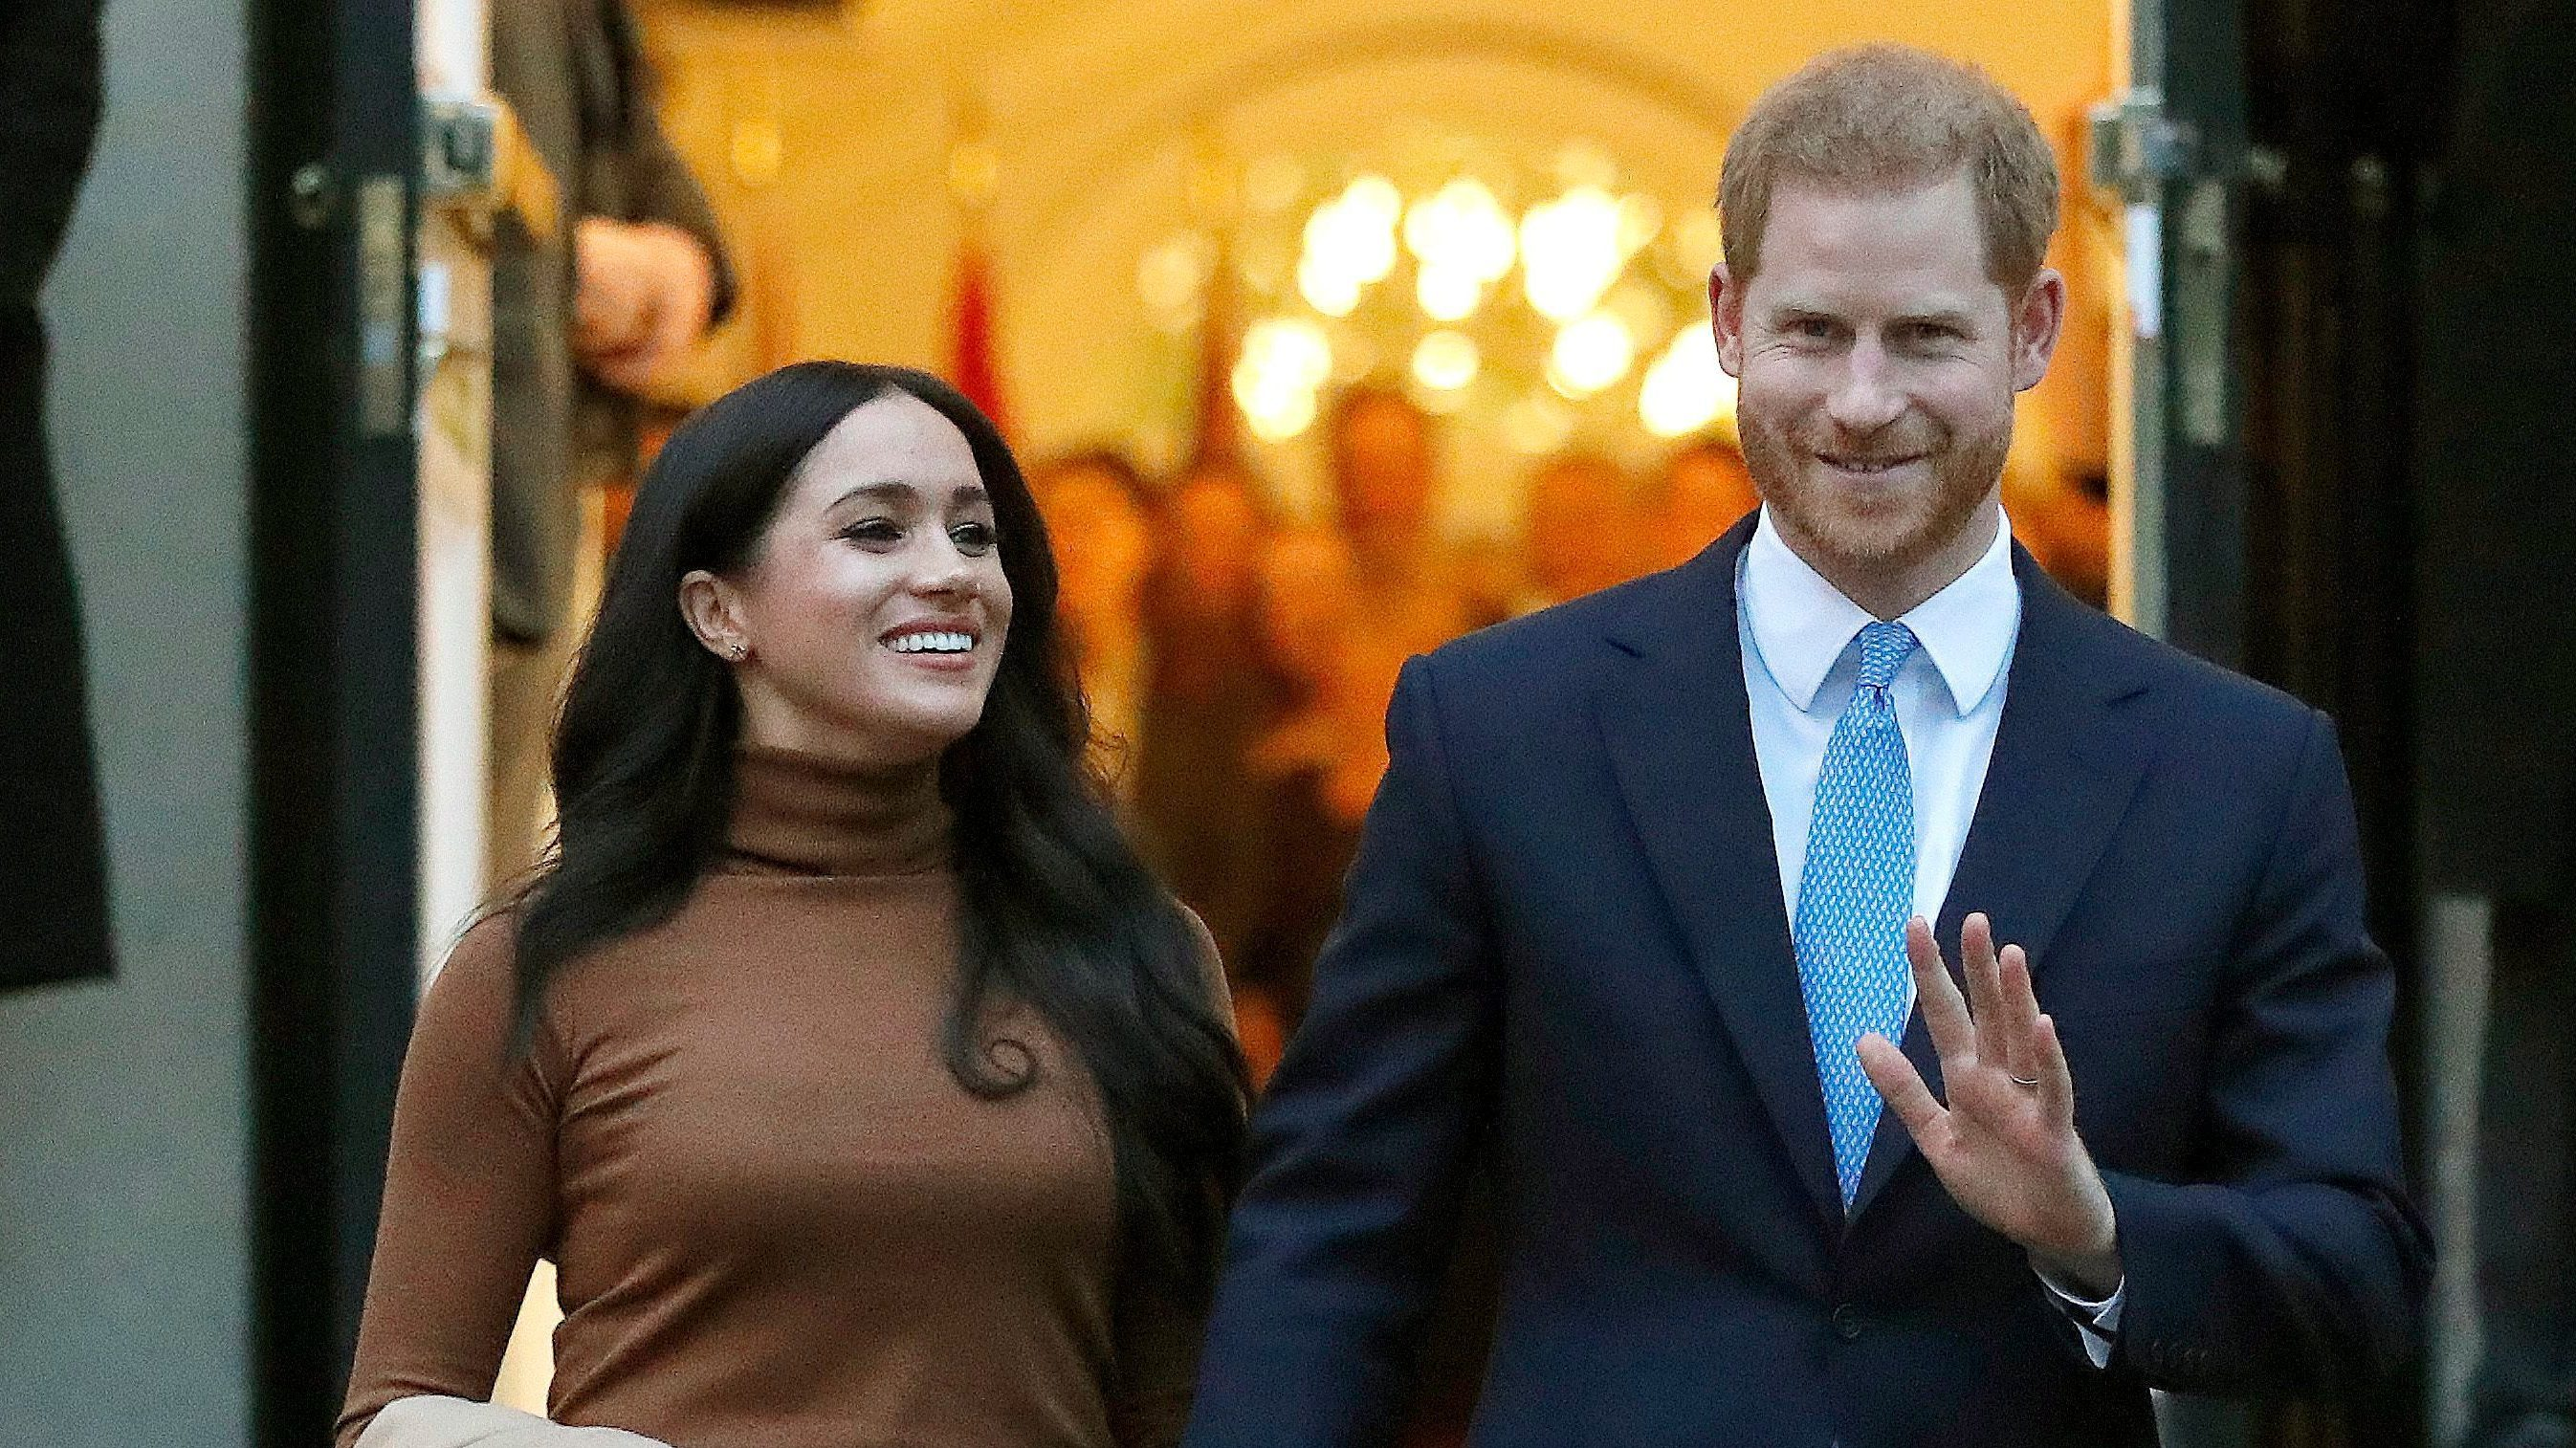 Prince Harry and Meghan Markle were right to step back from royal family, say KU survey